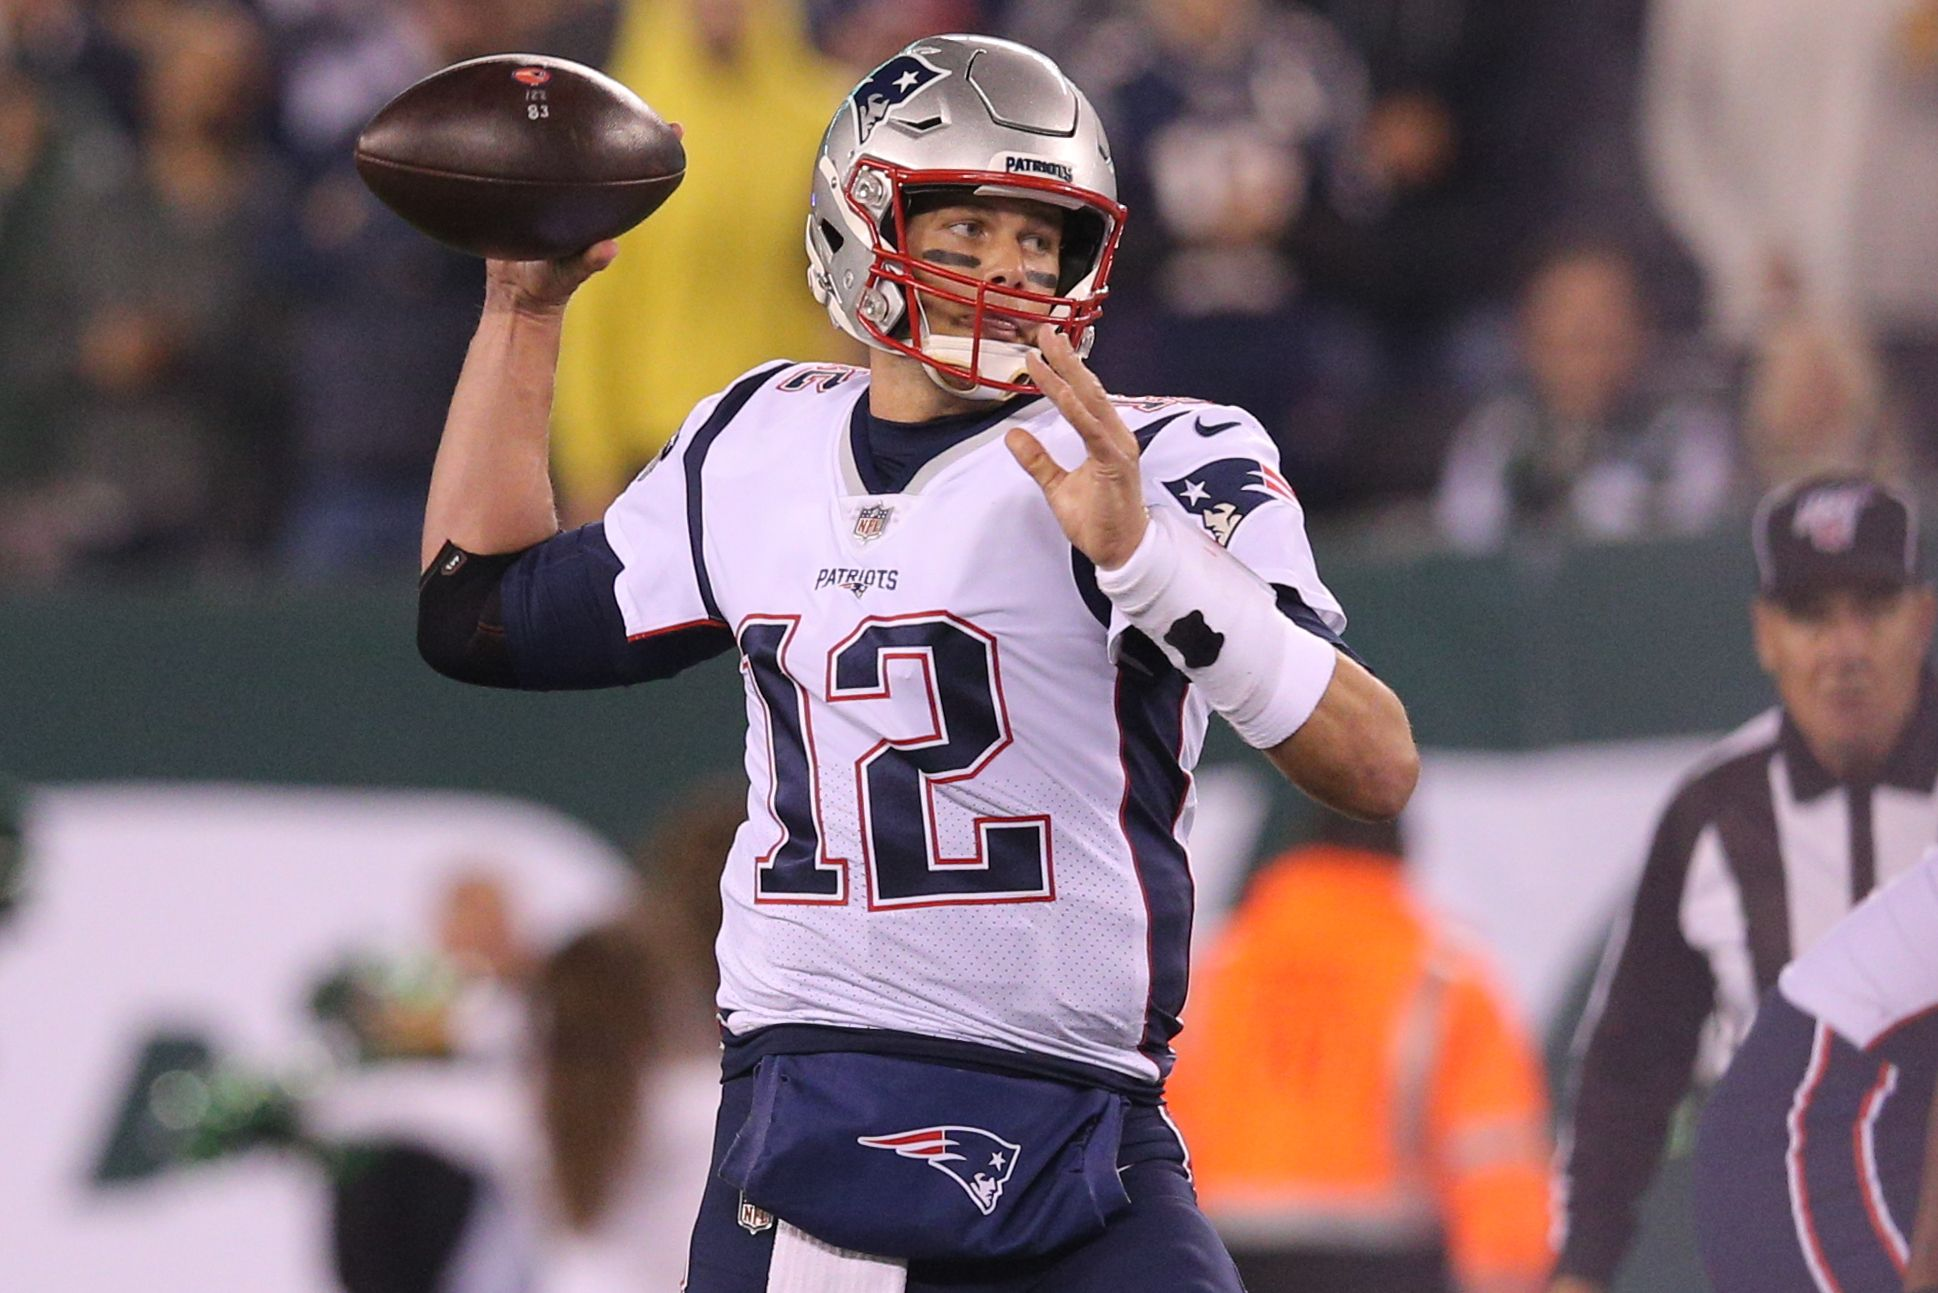 James Jones Cam Is An Upgrade At Qb For Pats Over Brady Nfl News In 2020 Nfl News Patriots Quarterbacks Nfl